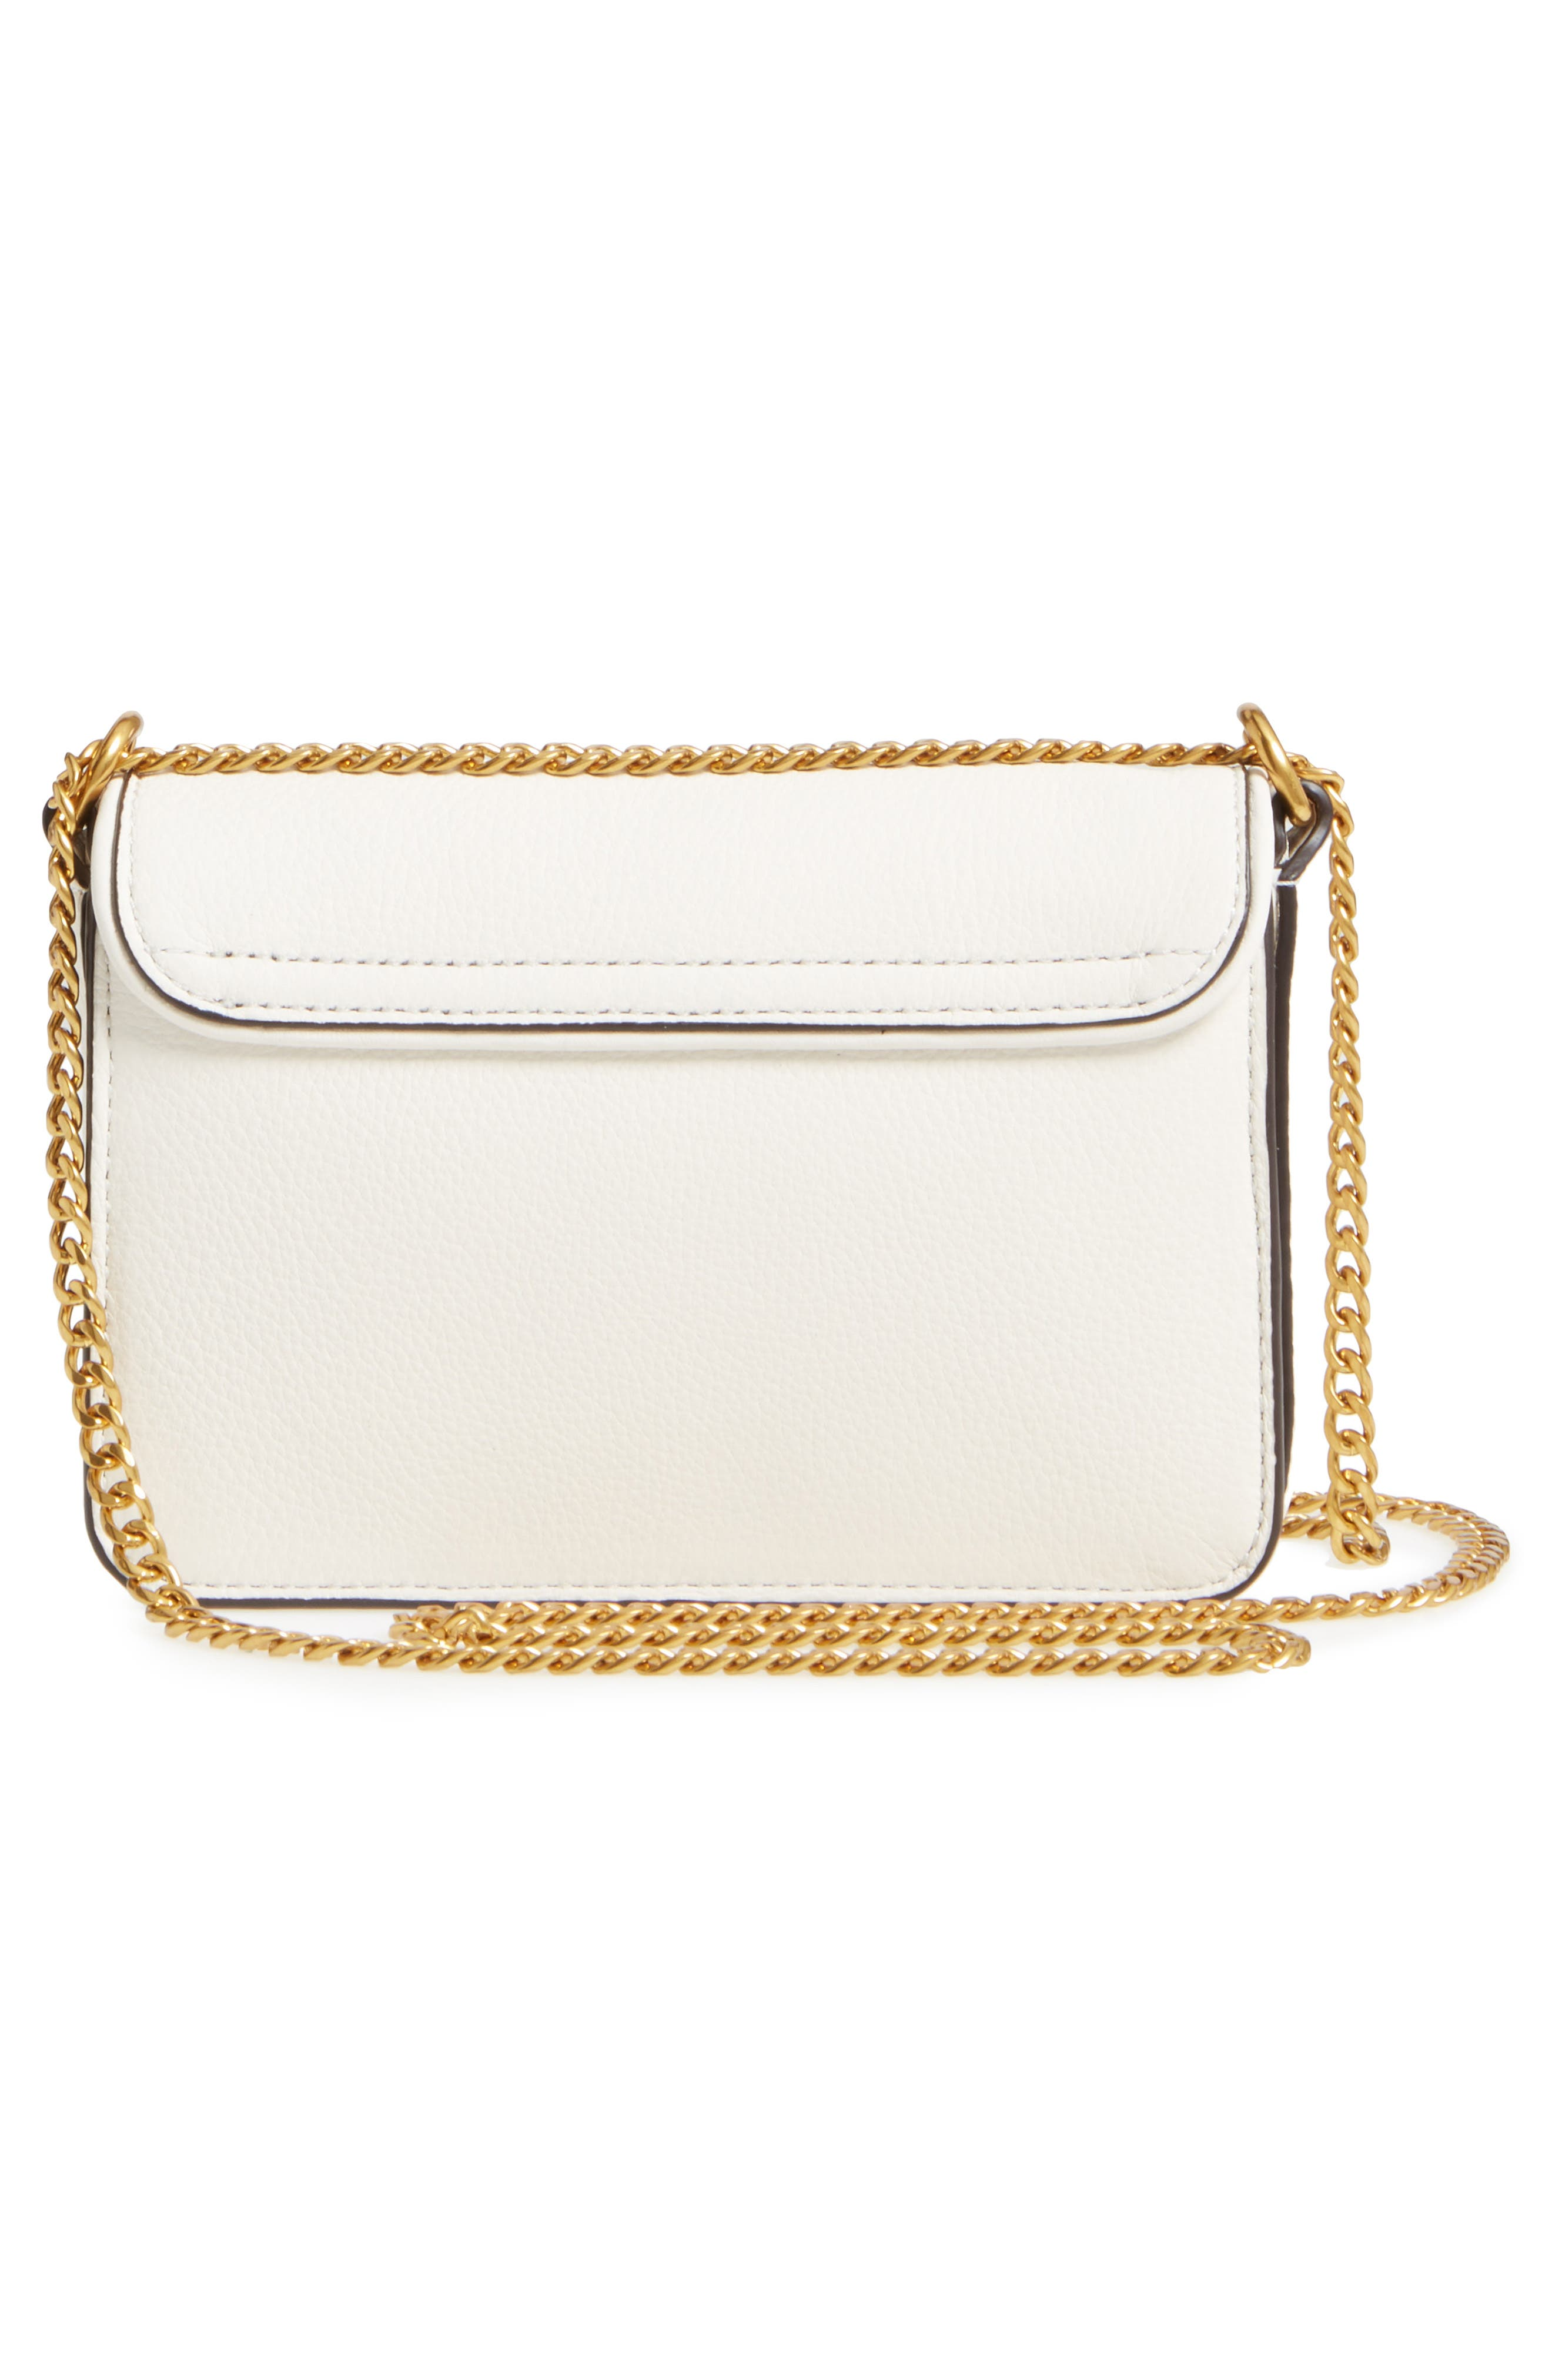 Mini Chelsea Leather Convertible Crossbody Bag,                             Alternate thumbnail 2, color,                             New Ivory